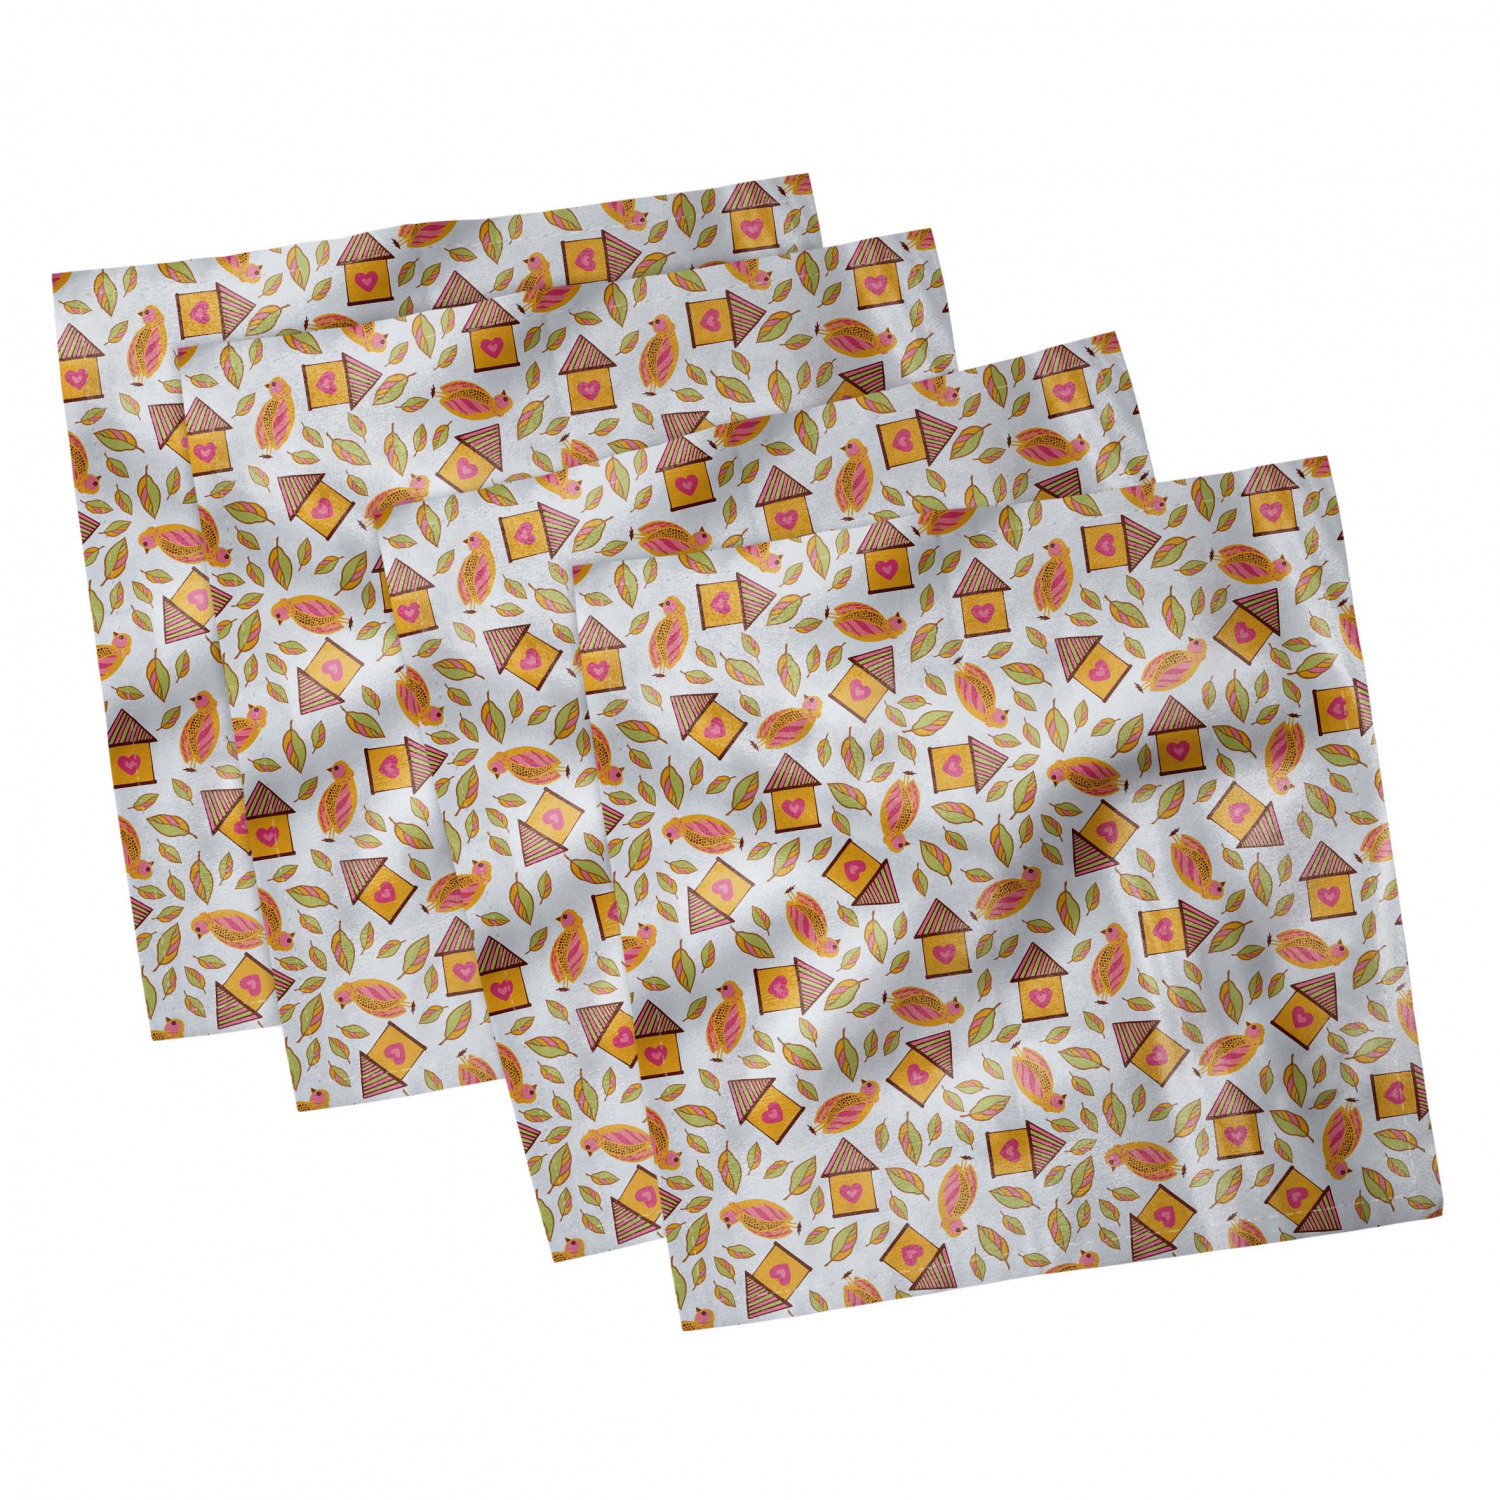 thumbnail 11 - Ambesonne Autumn Fall Decorative Satin Napkins Set of 4 Party Dinner Fabric